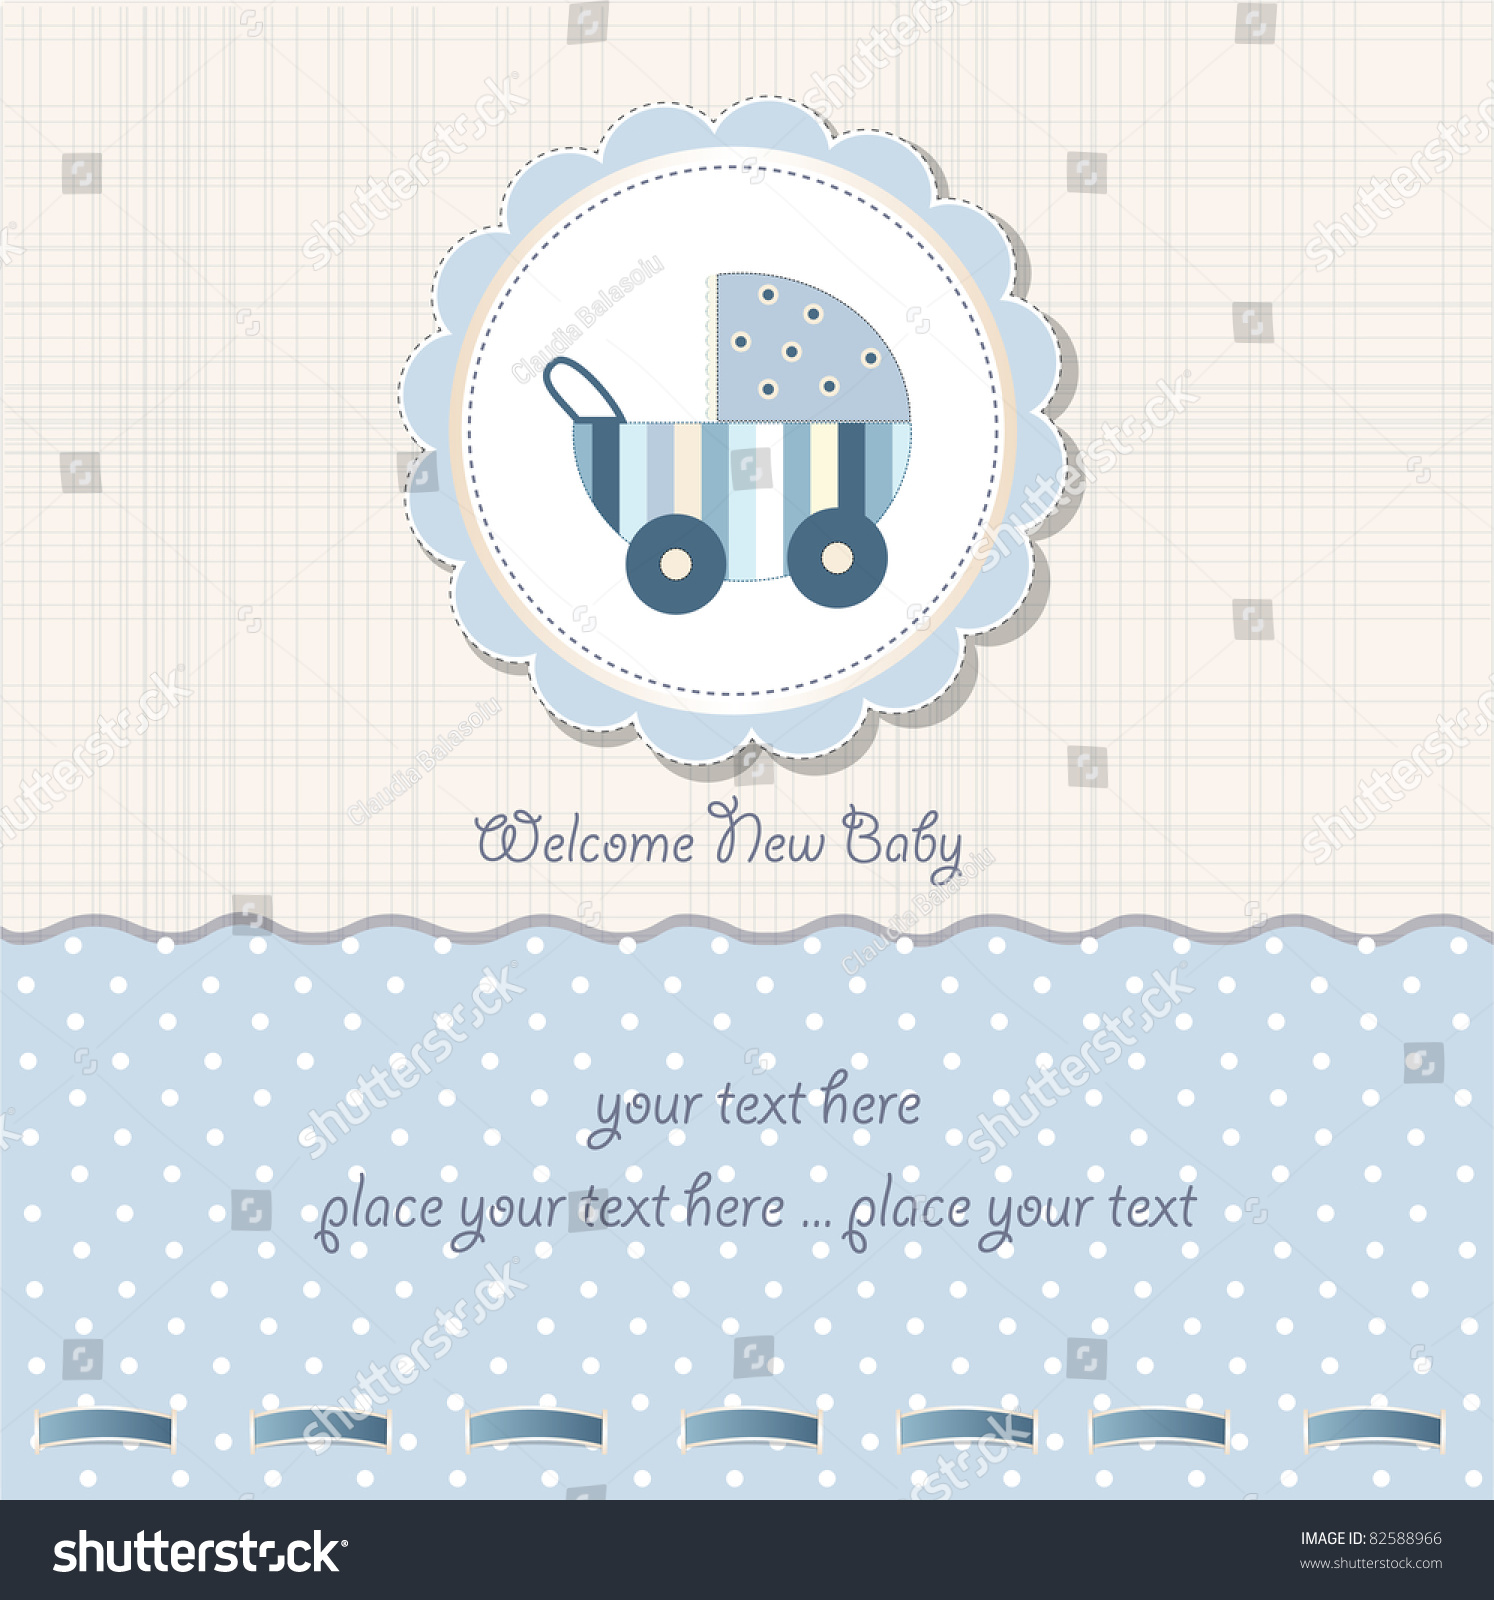 Baby boy arrival card vector by leonart image 600444 vectorstock - Baby Boy Shower Card Stock Vector Illustration 82588966 Wallpaper Gallery Baby Shower Card Vector By